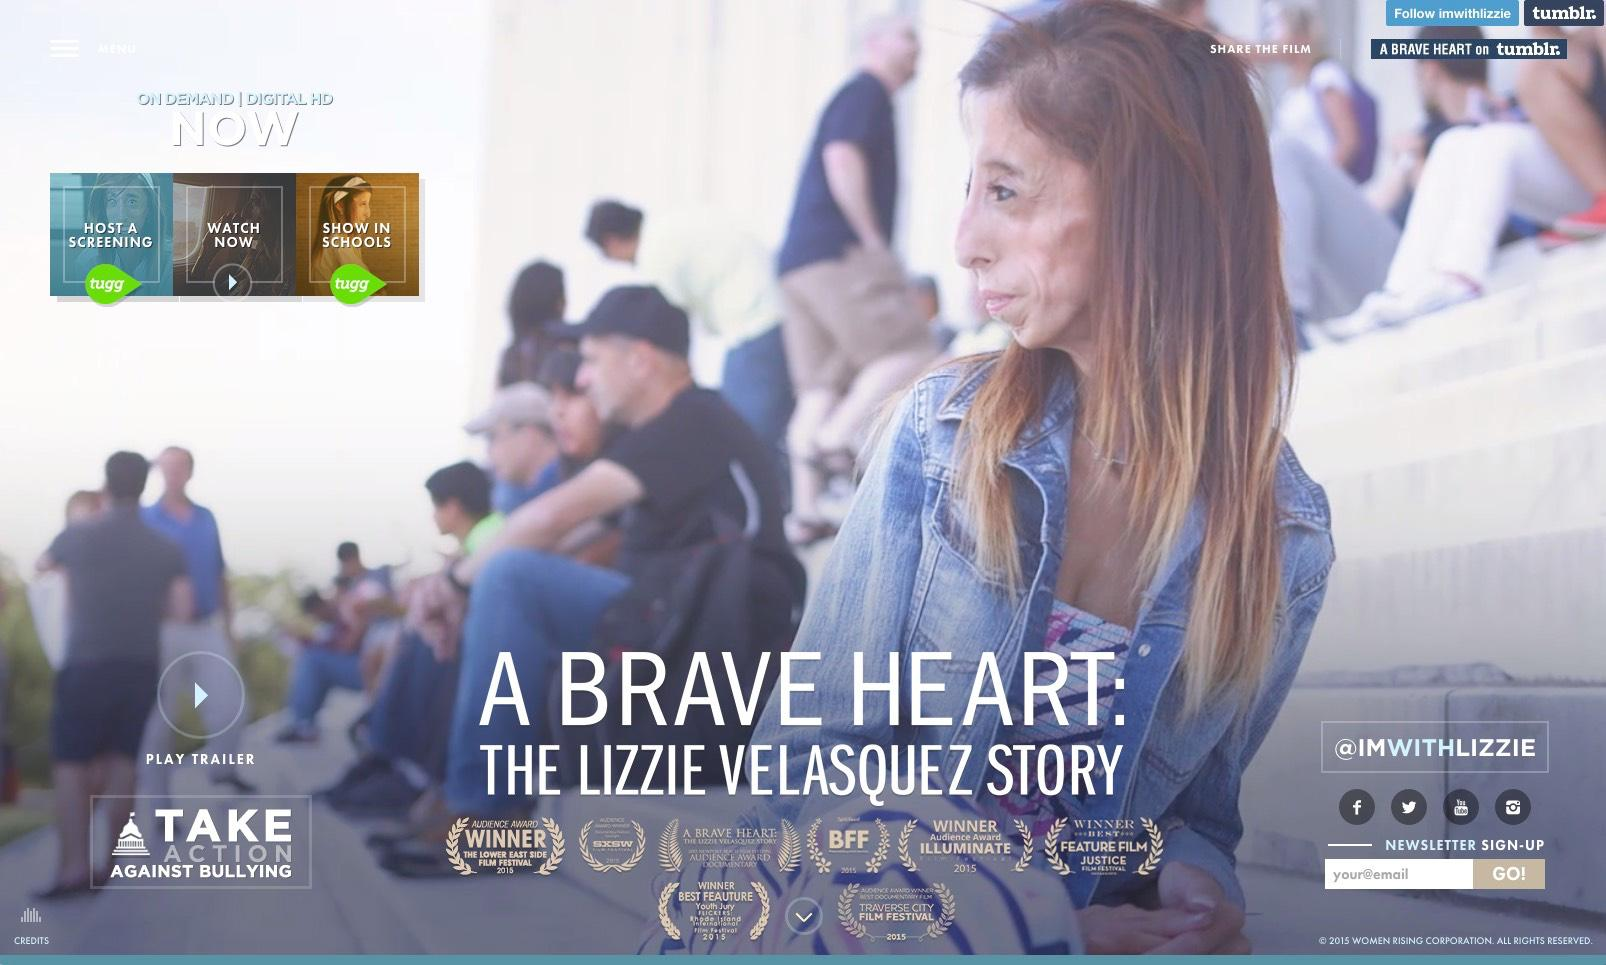 Thumbnail for I'm With Lizzie : Tumblr Social Initiative on Anti-Bullying